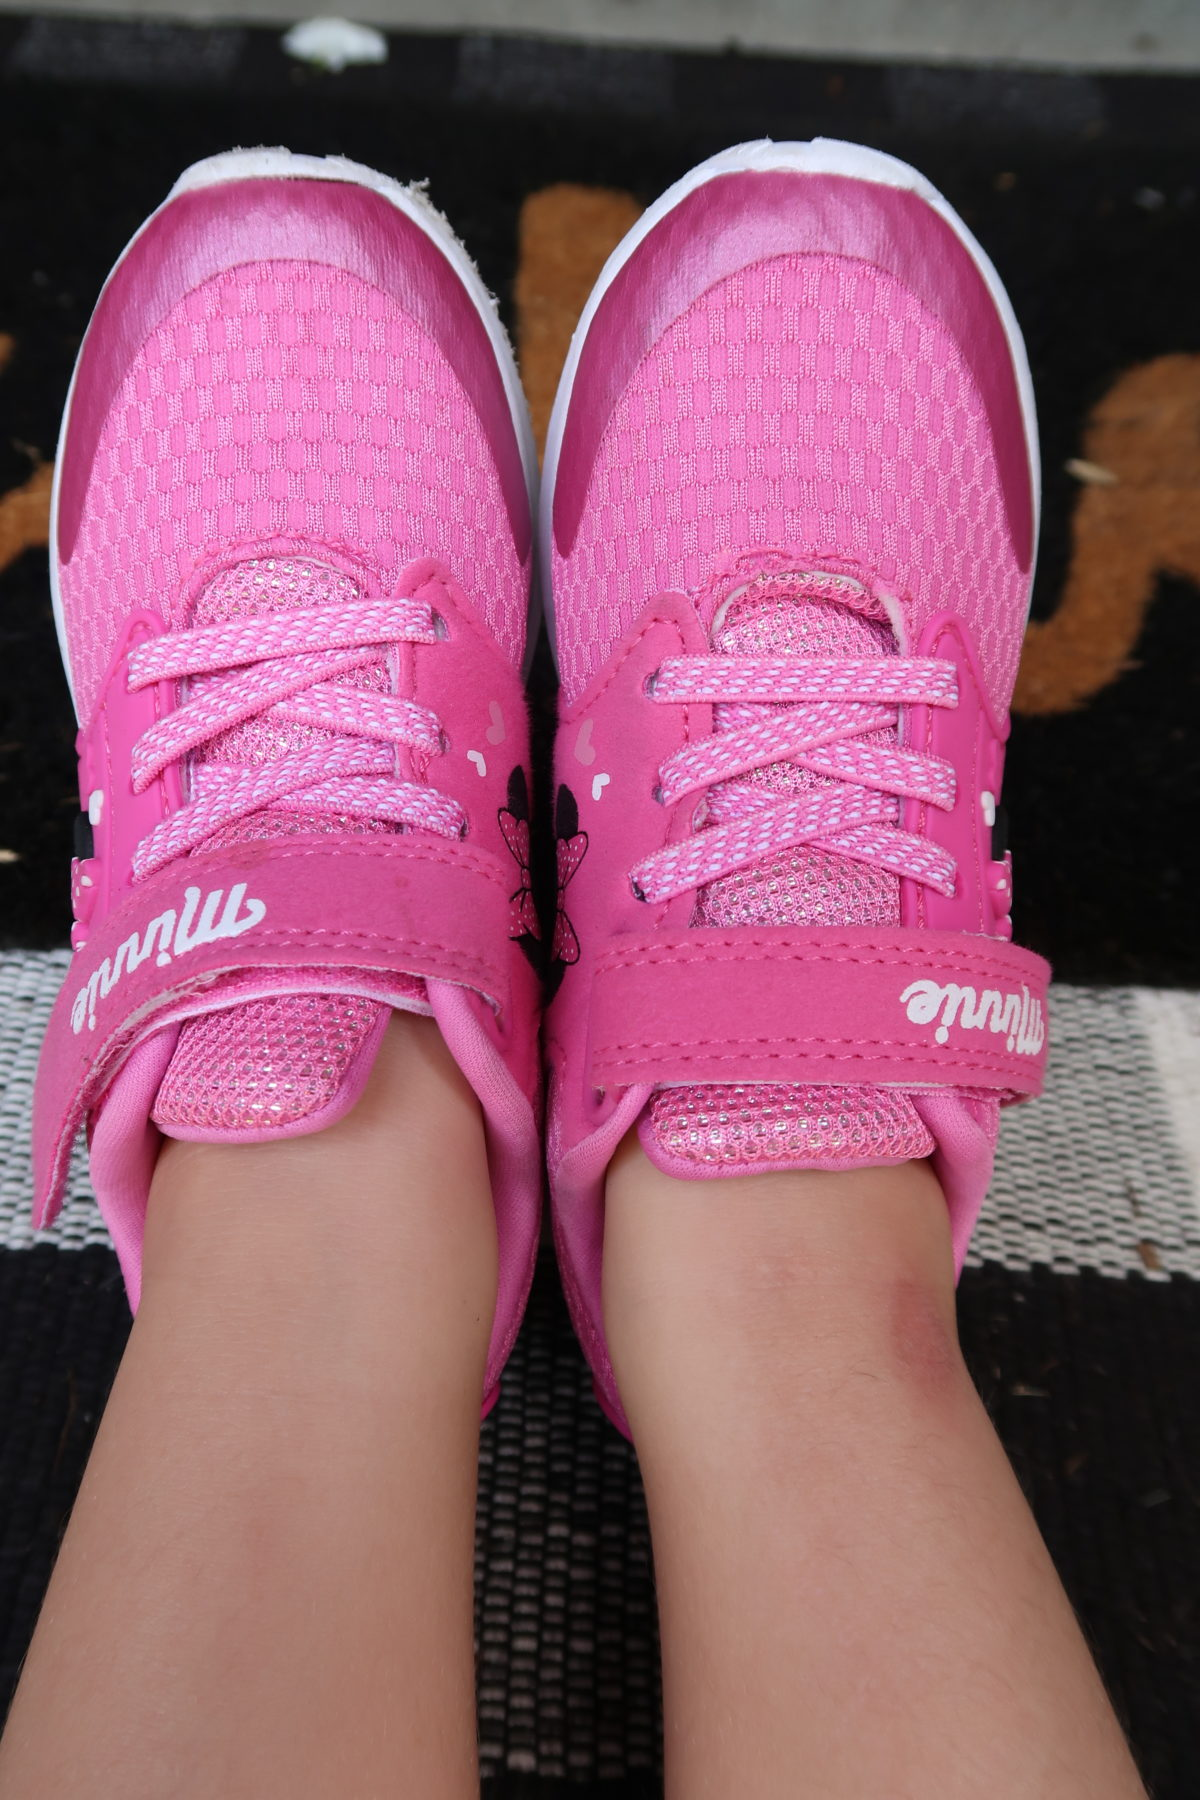 Walmart Minnie Mouse Sneakers